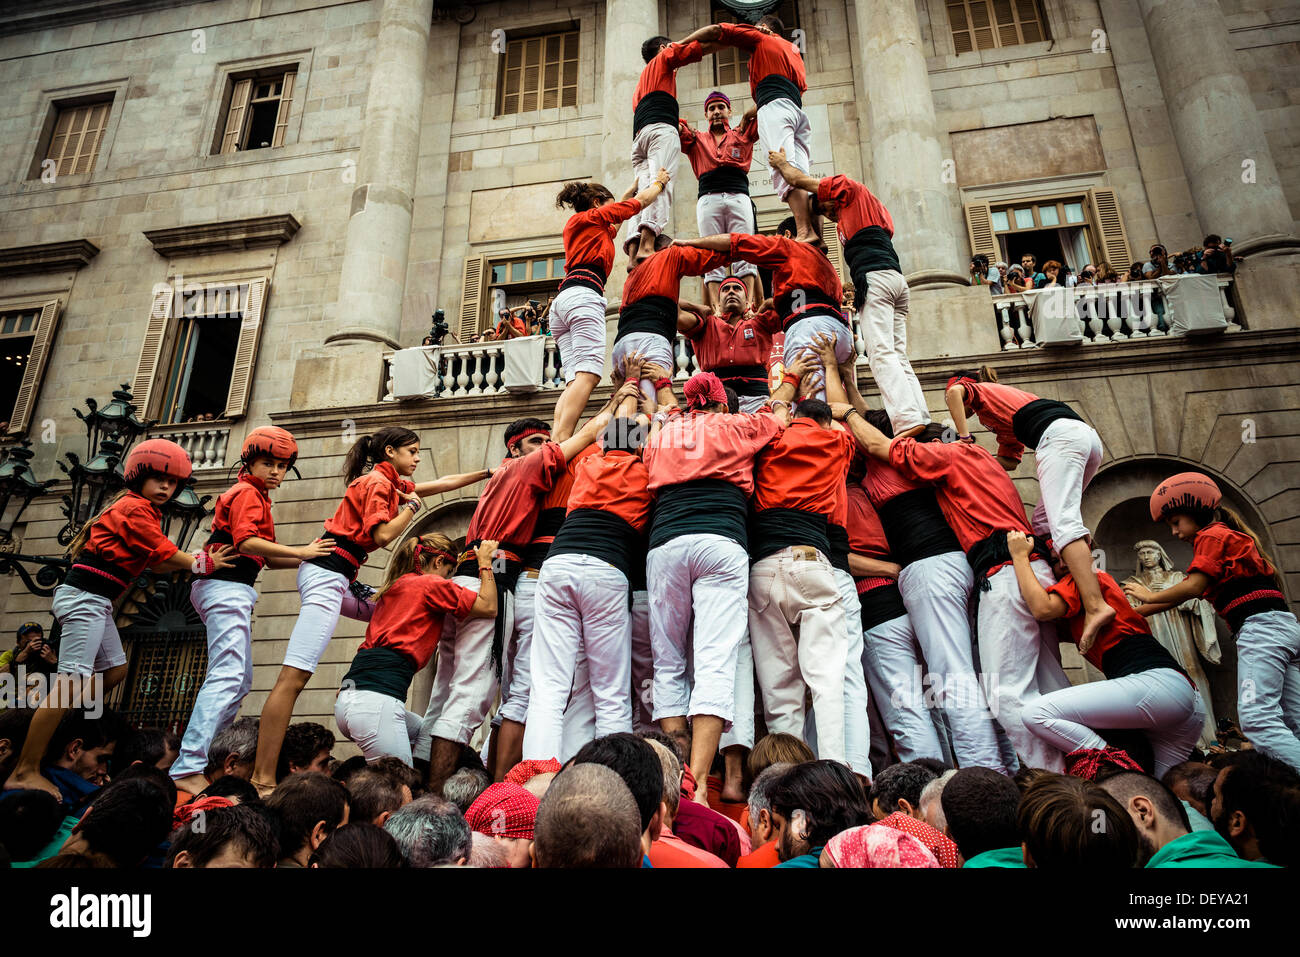 Barcelona, Spain. 24th Sep, 2013: The Castellers of Barcelona build a human tower in front of Barcelona's town hall during the city festival, La Merce, 2013 © matthi/Alamy Live News - Stock Image